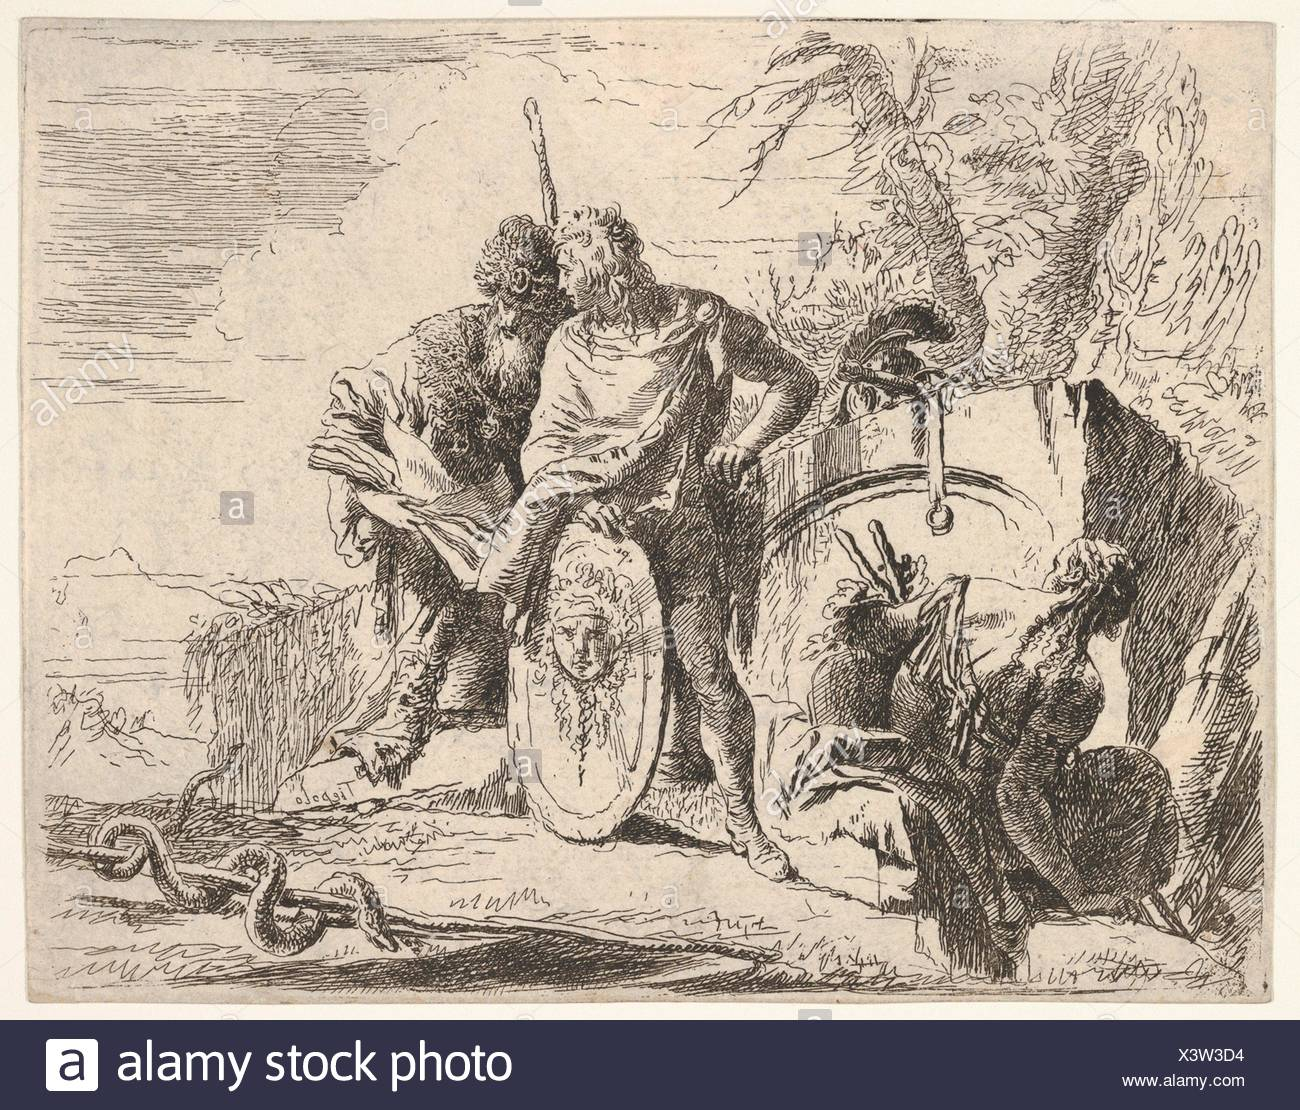 Three figures and a snake coiled around a staff, surrounded by a landscape, the central figure rests his left hand on a shield and leans toward a - Stock Image